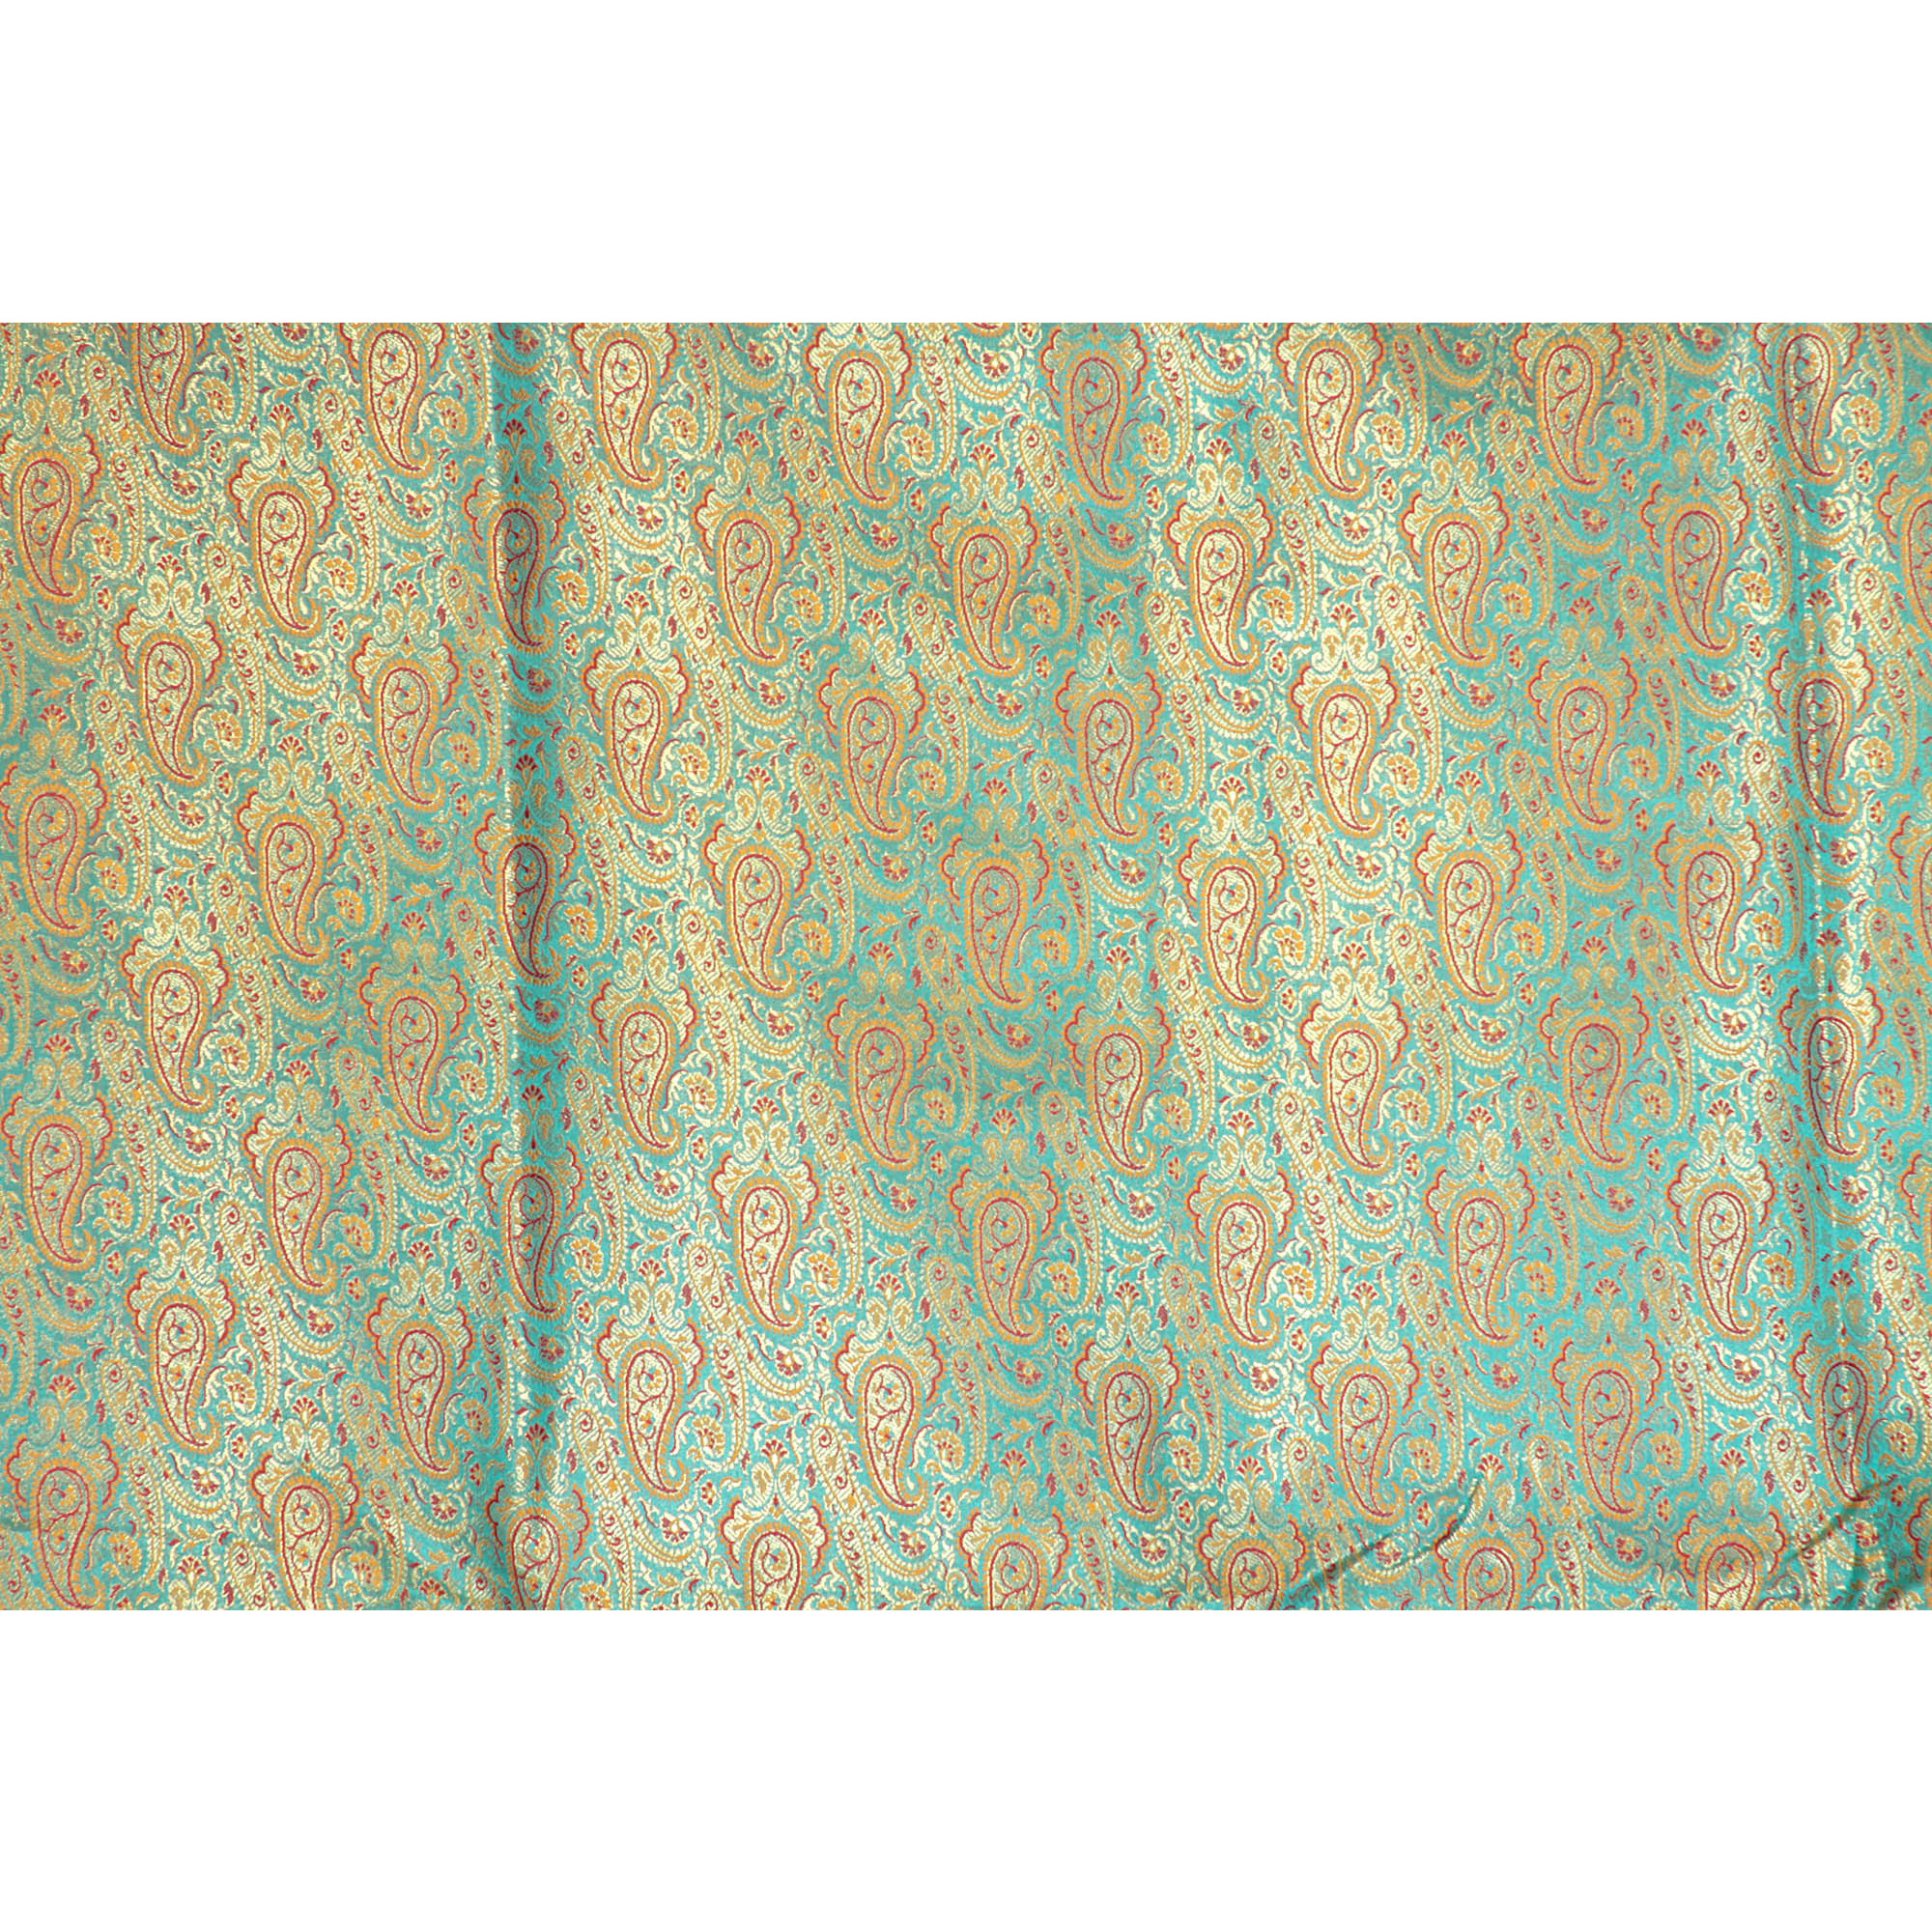 Turquoise-Blue Fabric from Banaras with Paisleys Woven in Golden Thread